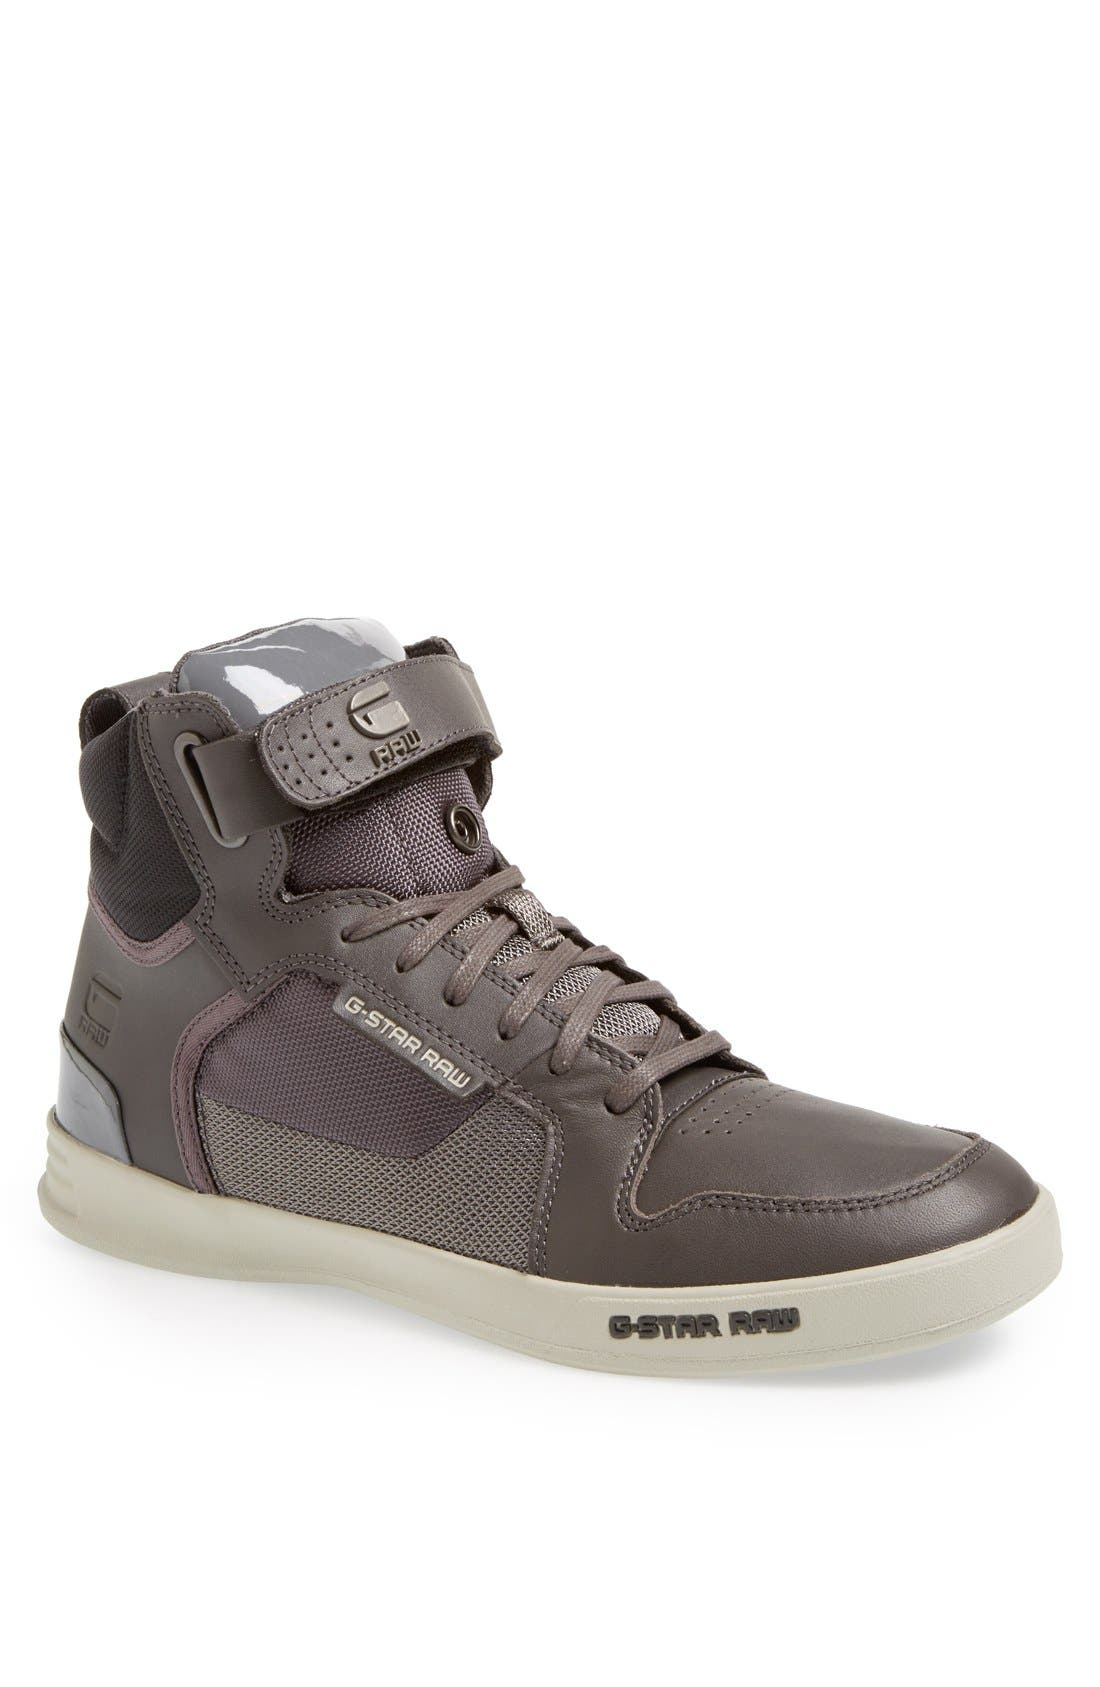 Alternate Image 1 Selected - G-Star Raw 'Yard Bullion' Sneaker (Men)